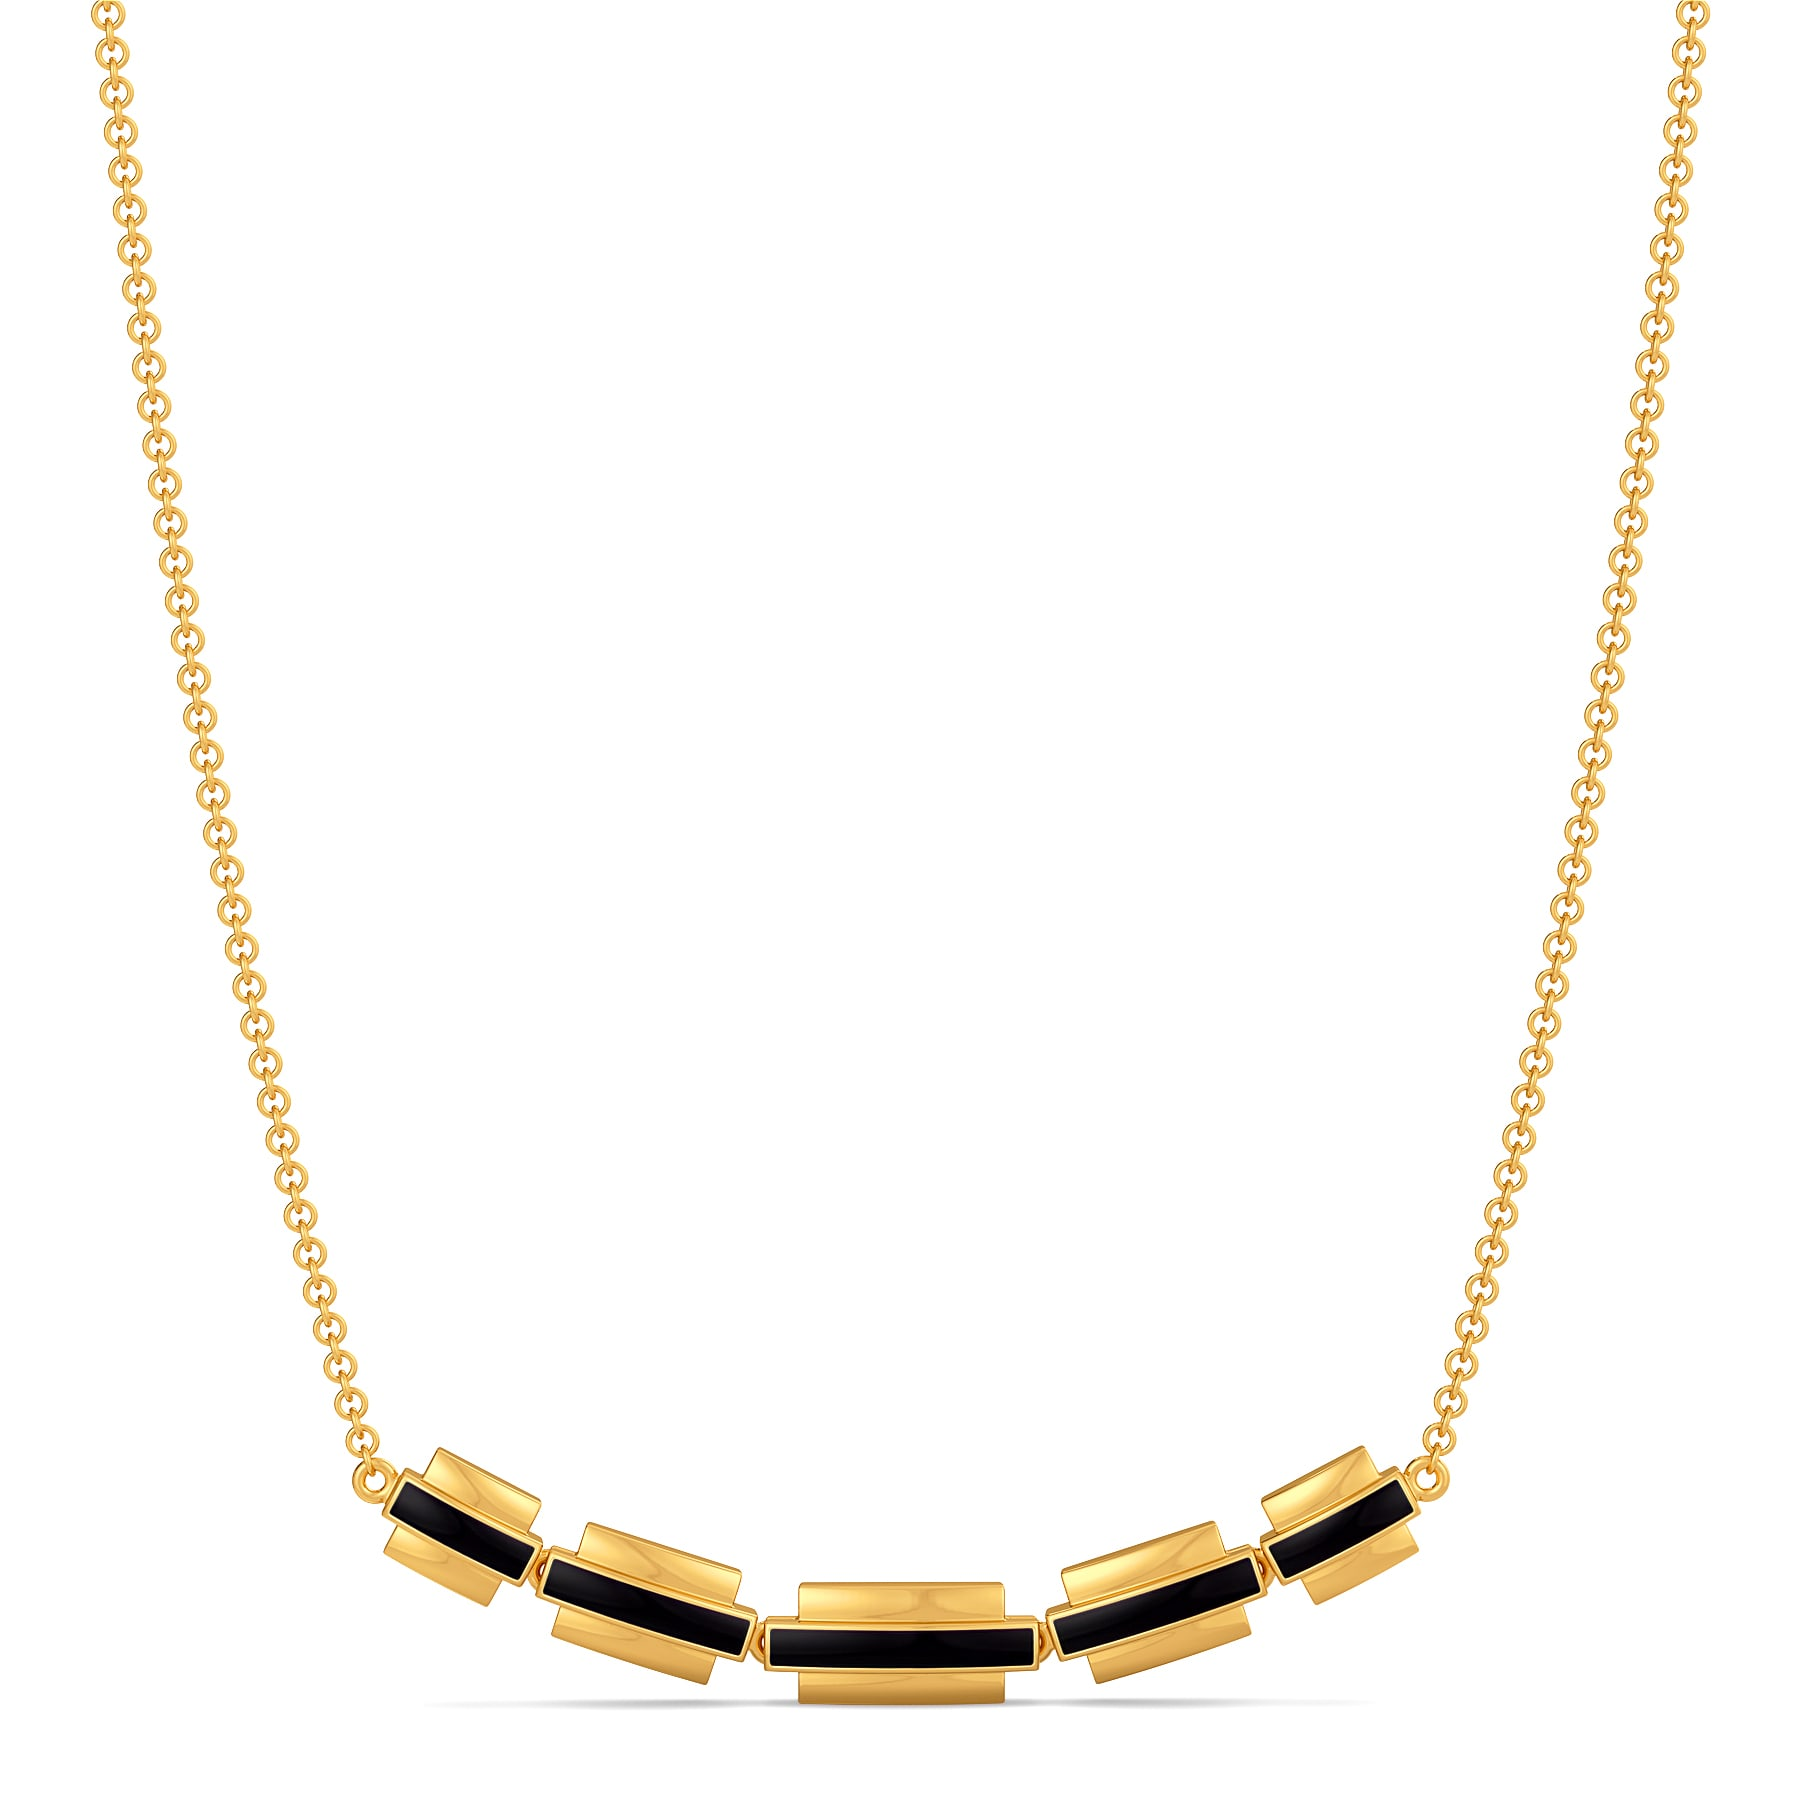 Matrix Fashion Gold Necklaces